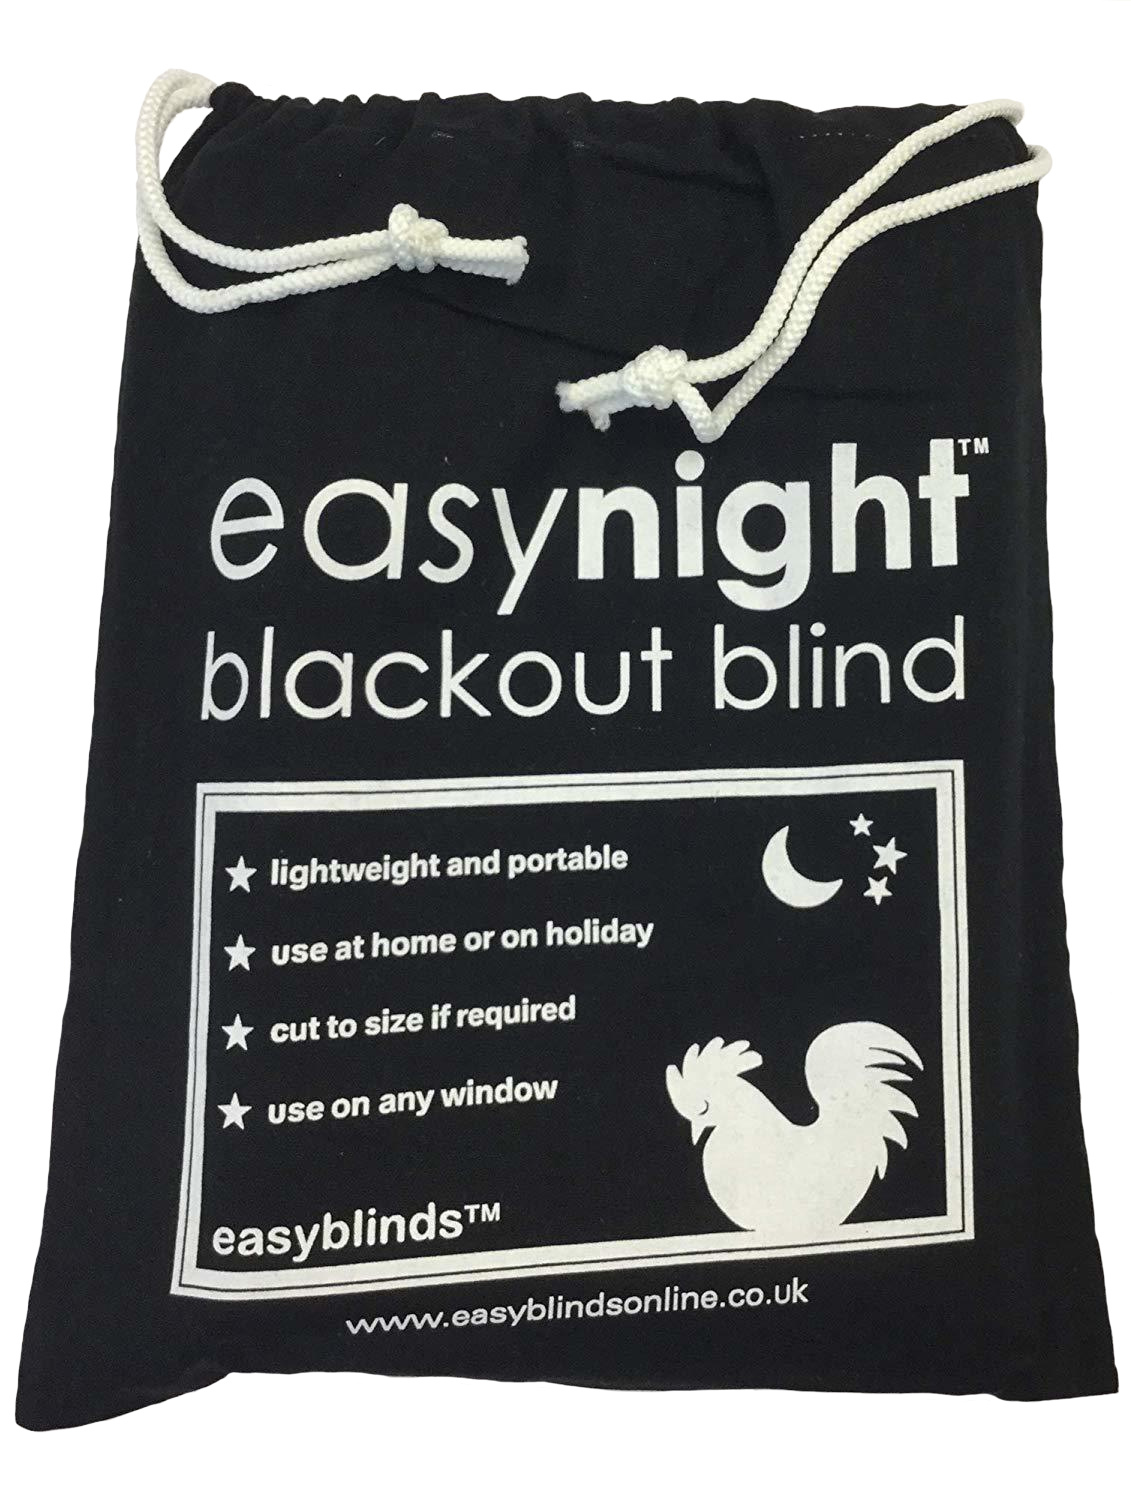 Easynight: Blackout Blind - Large (2m x 1.4m) image